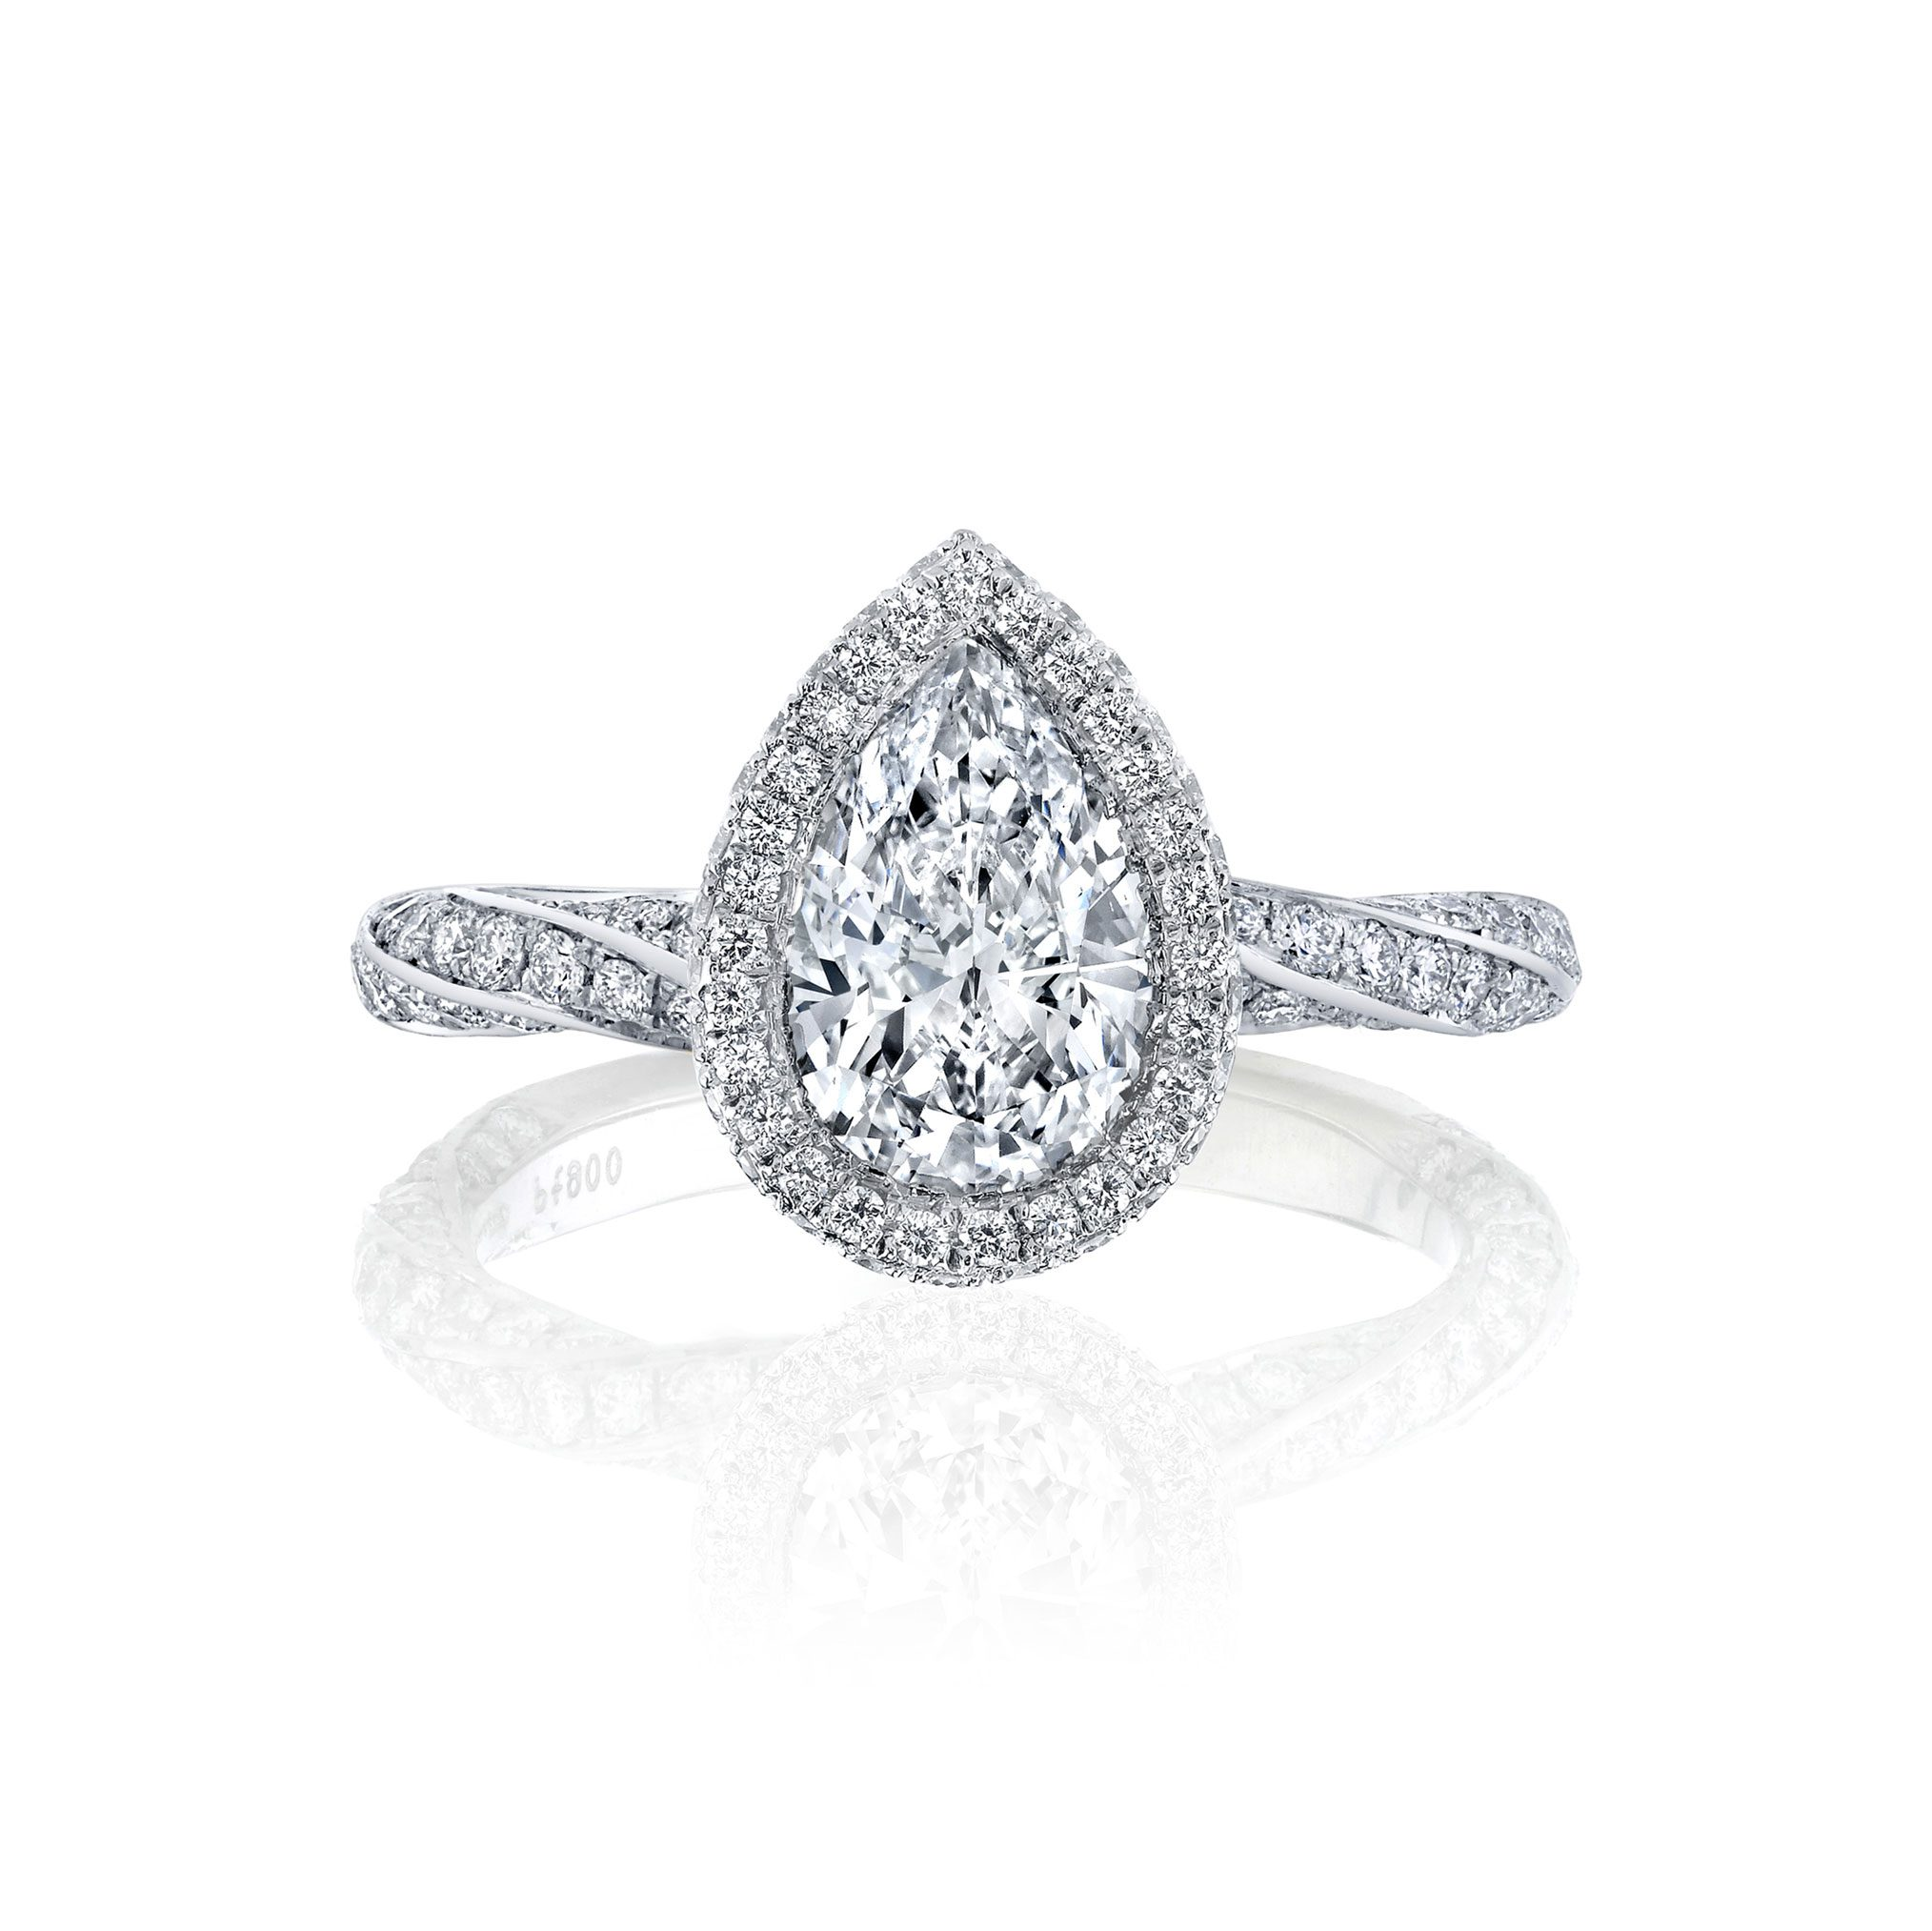 Camille Seamless Halo® Pear Cut Engagement Ring with Twist Pavé Band in 18k white gold